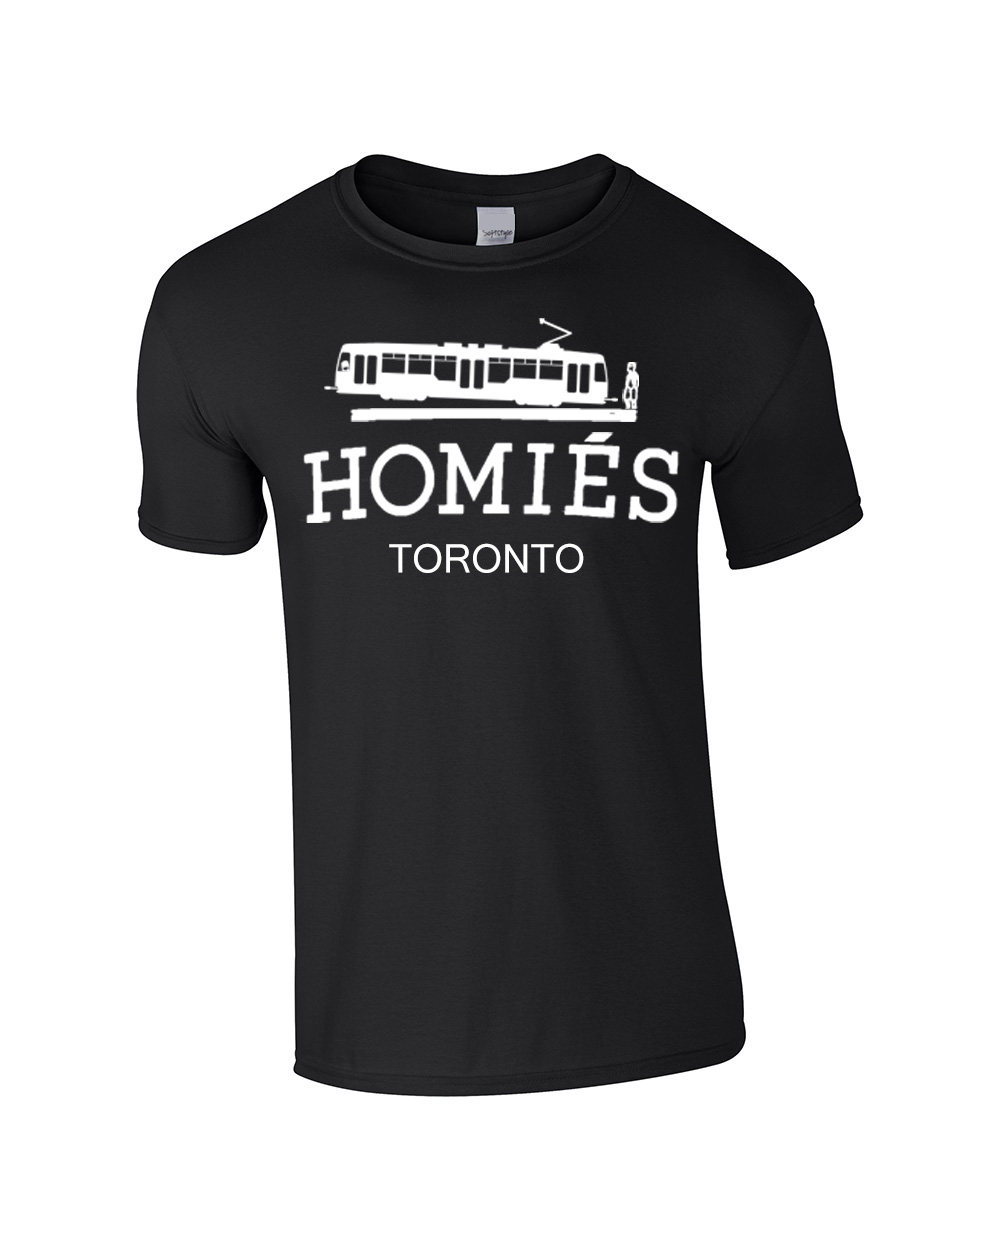 Well known Homies (Hermes) Toronto T-Shirt by 6ixset BI28